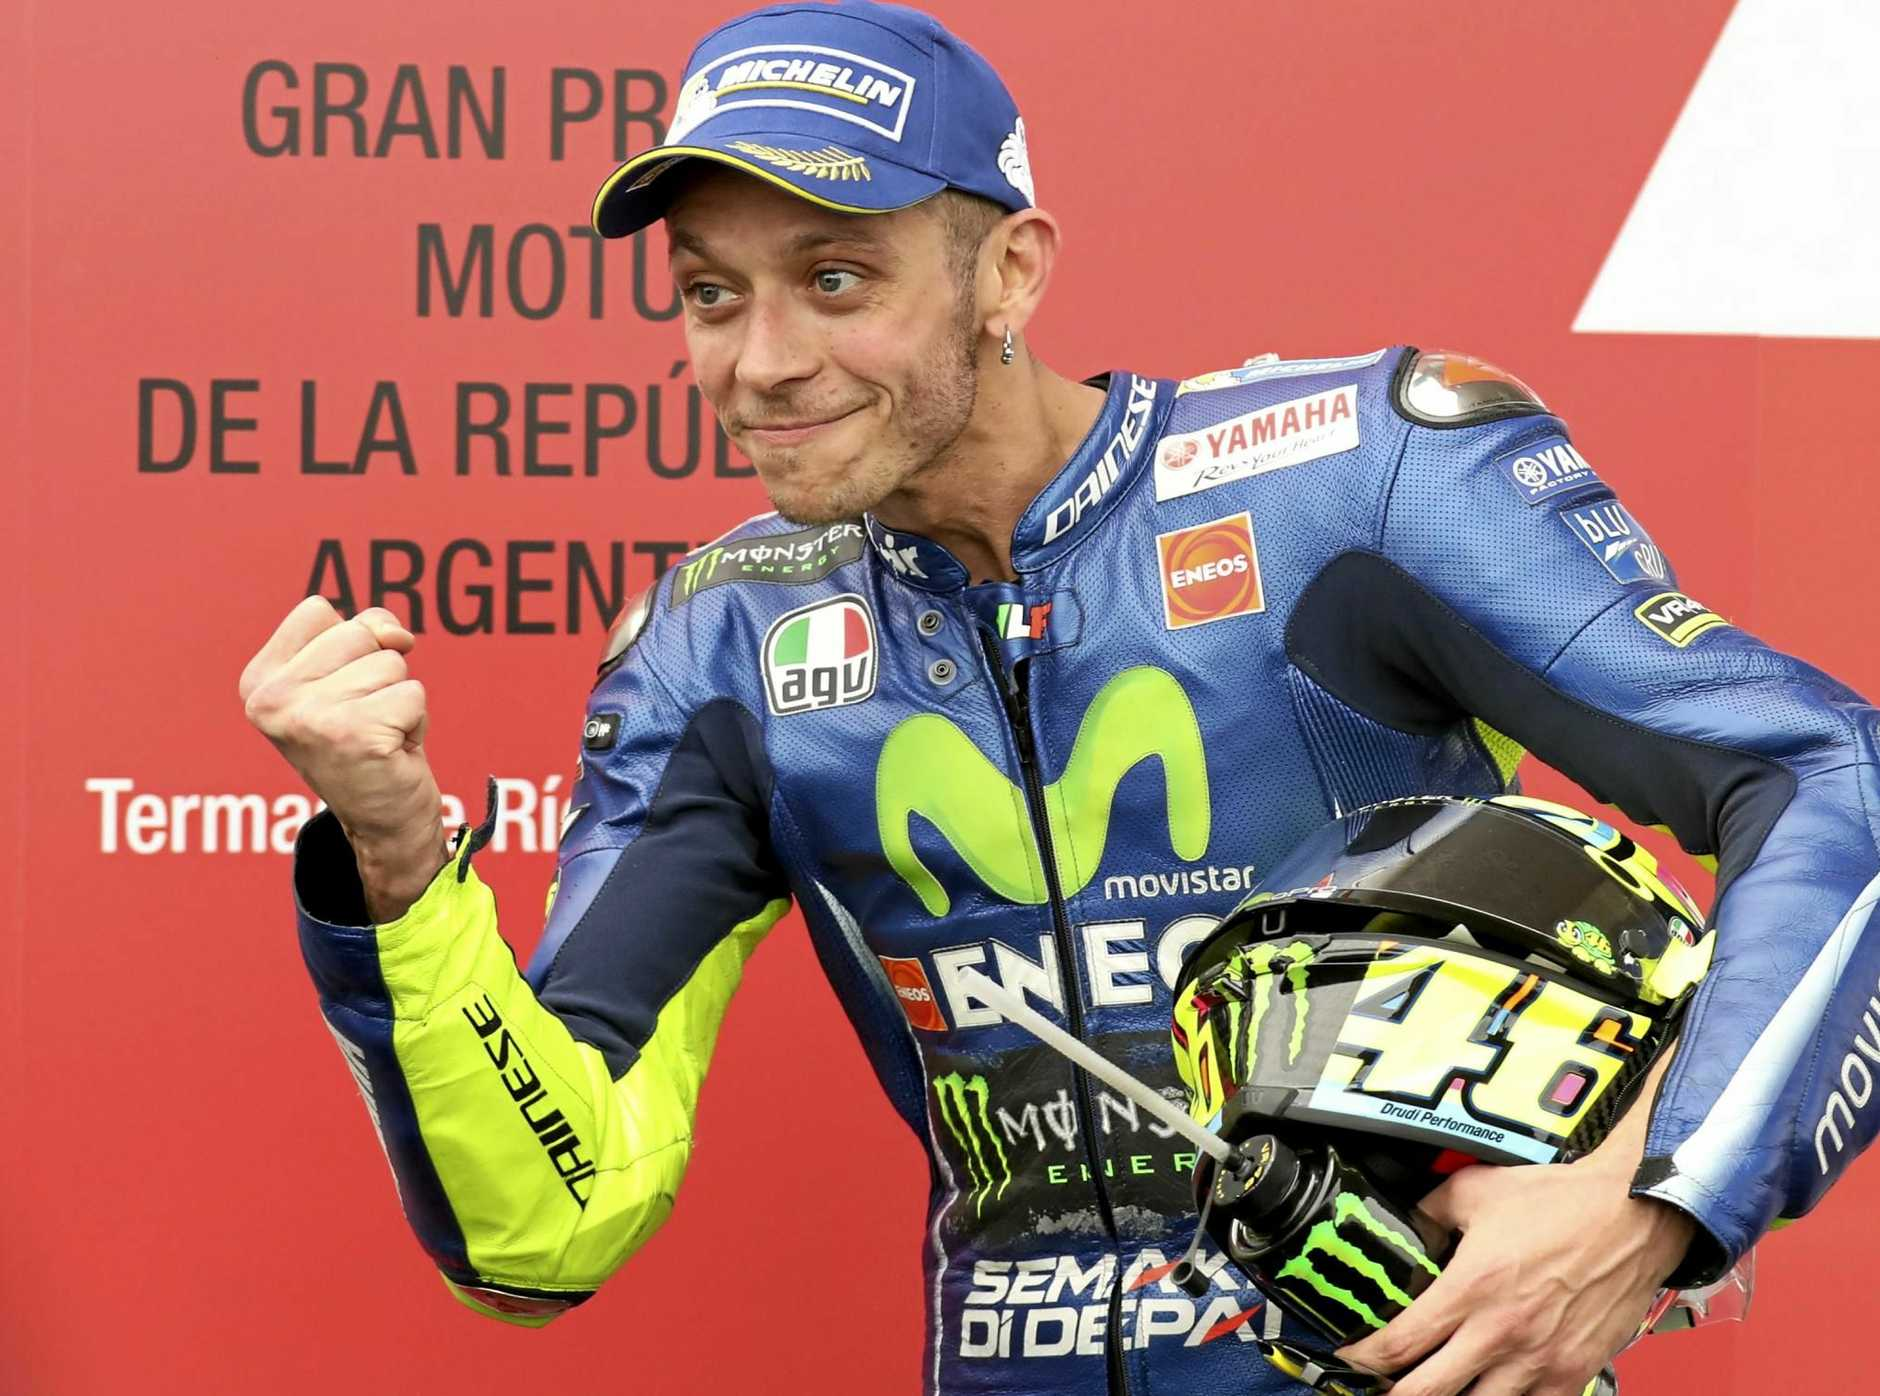 Italy's Valentino Rossi after winning second place at the Argentine MotoGP in April.